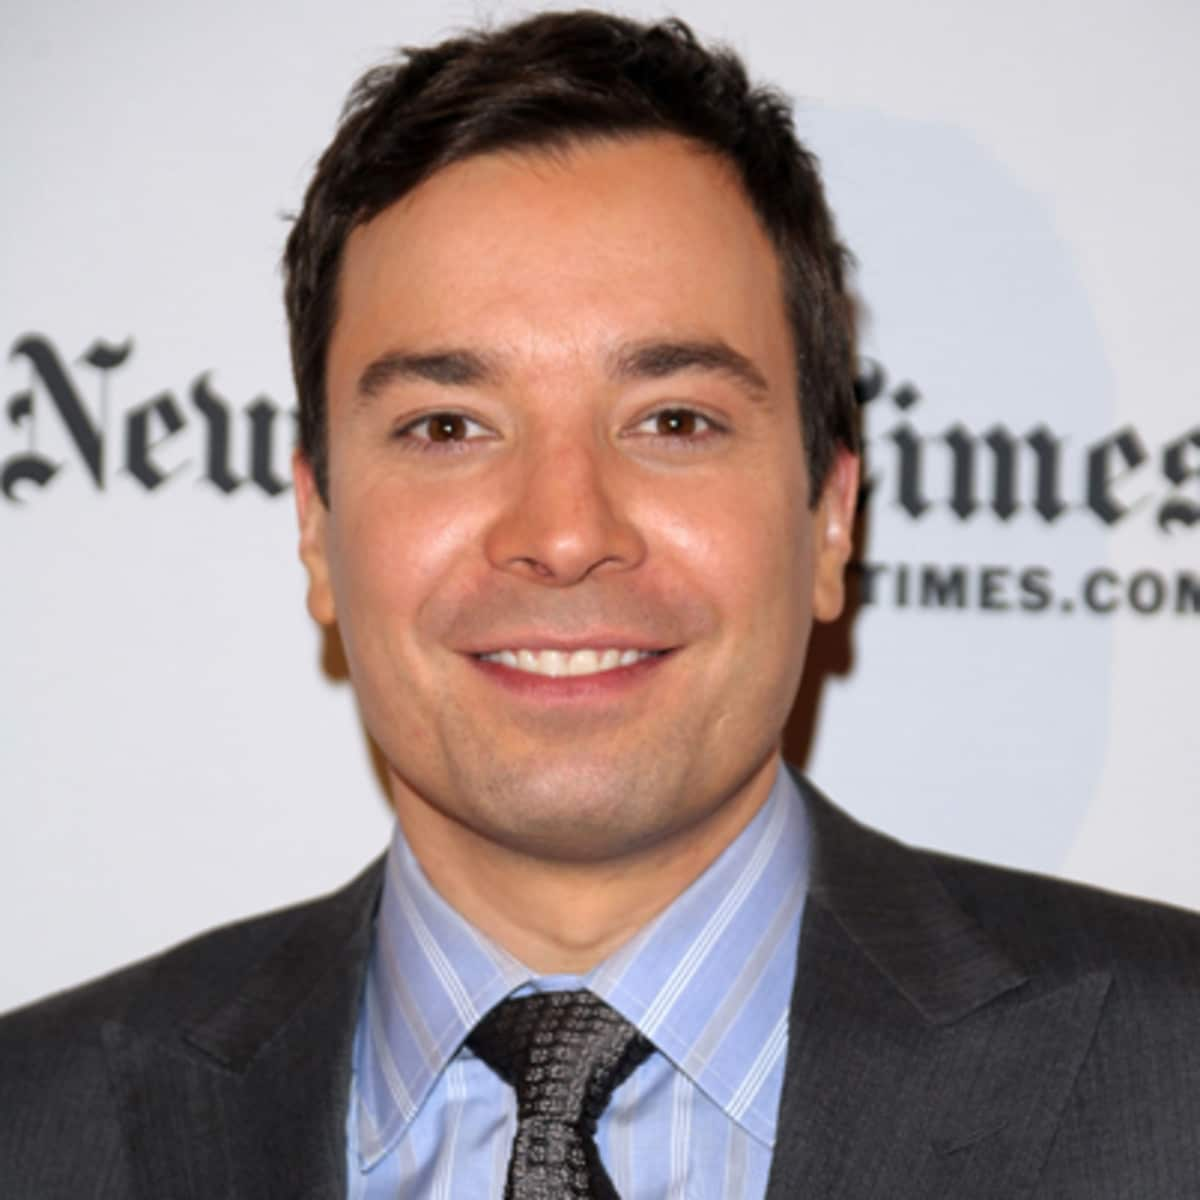 Jimmy Fallon American Actor, Comedian, Singer, Producer, TV Host, Writer